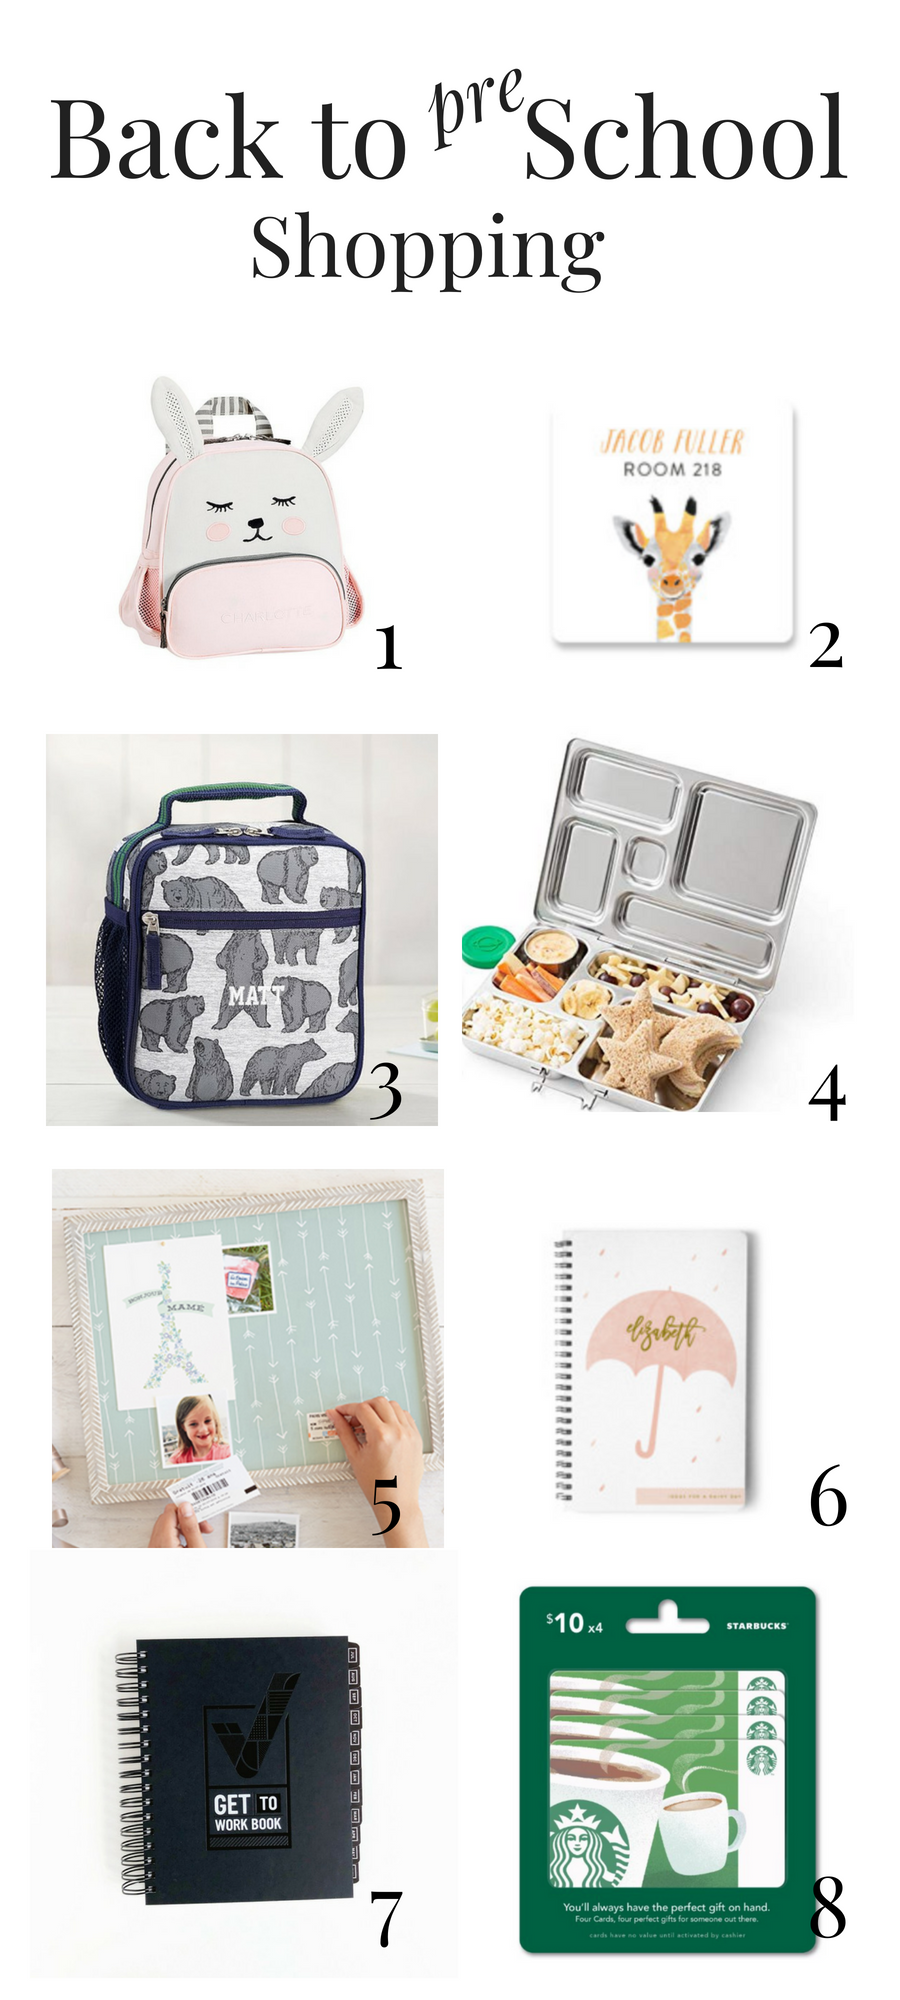 Back to School Shopping for Preschoolers - My Pretty Pennies